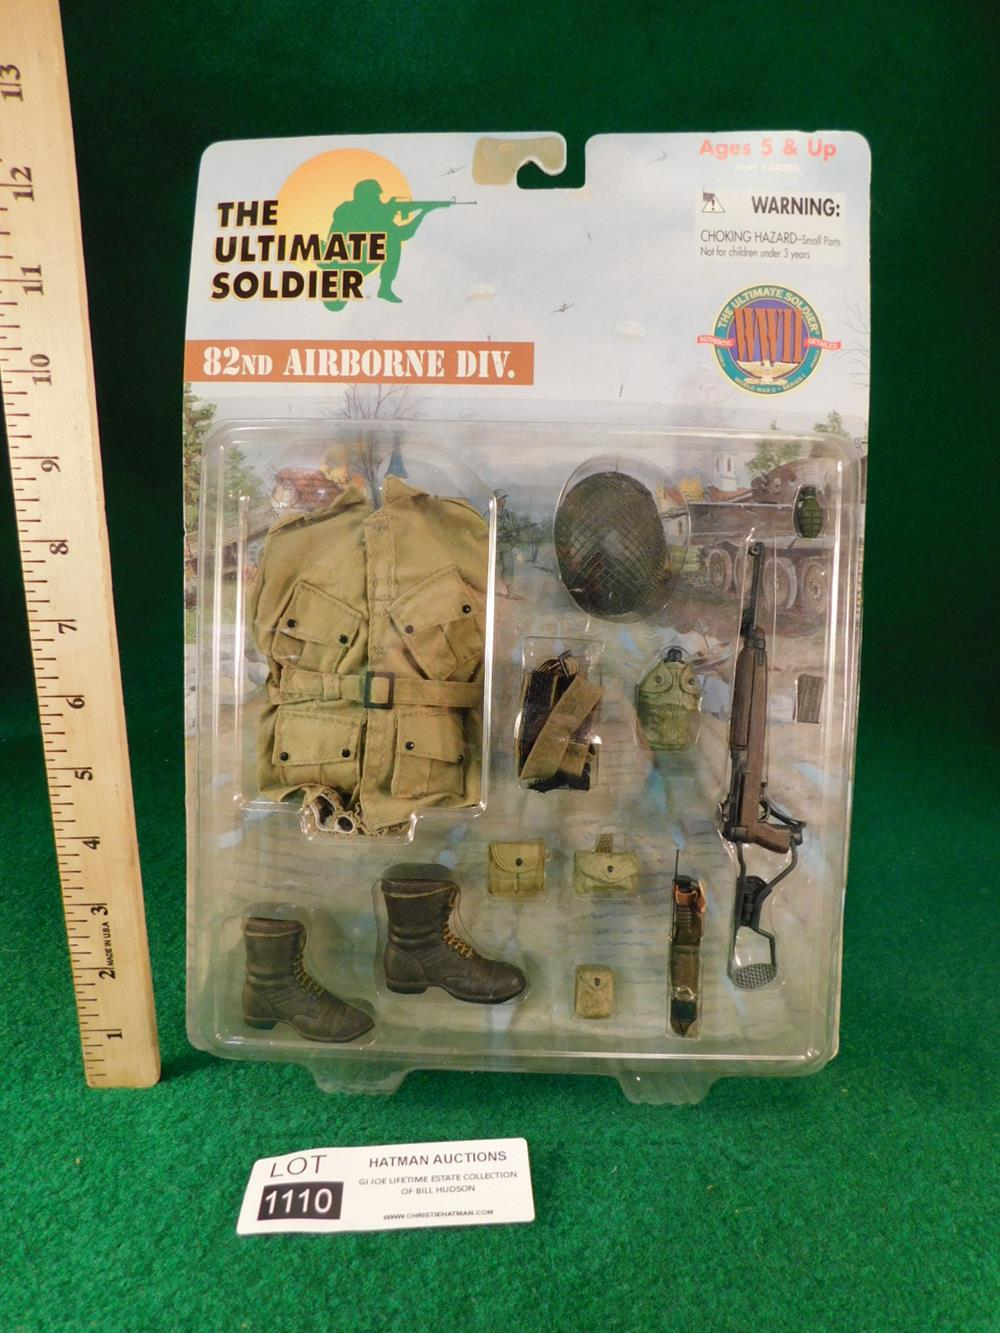 82ND AIRBORNE DIVISION GI JOE ACTION FIGURE